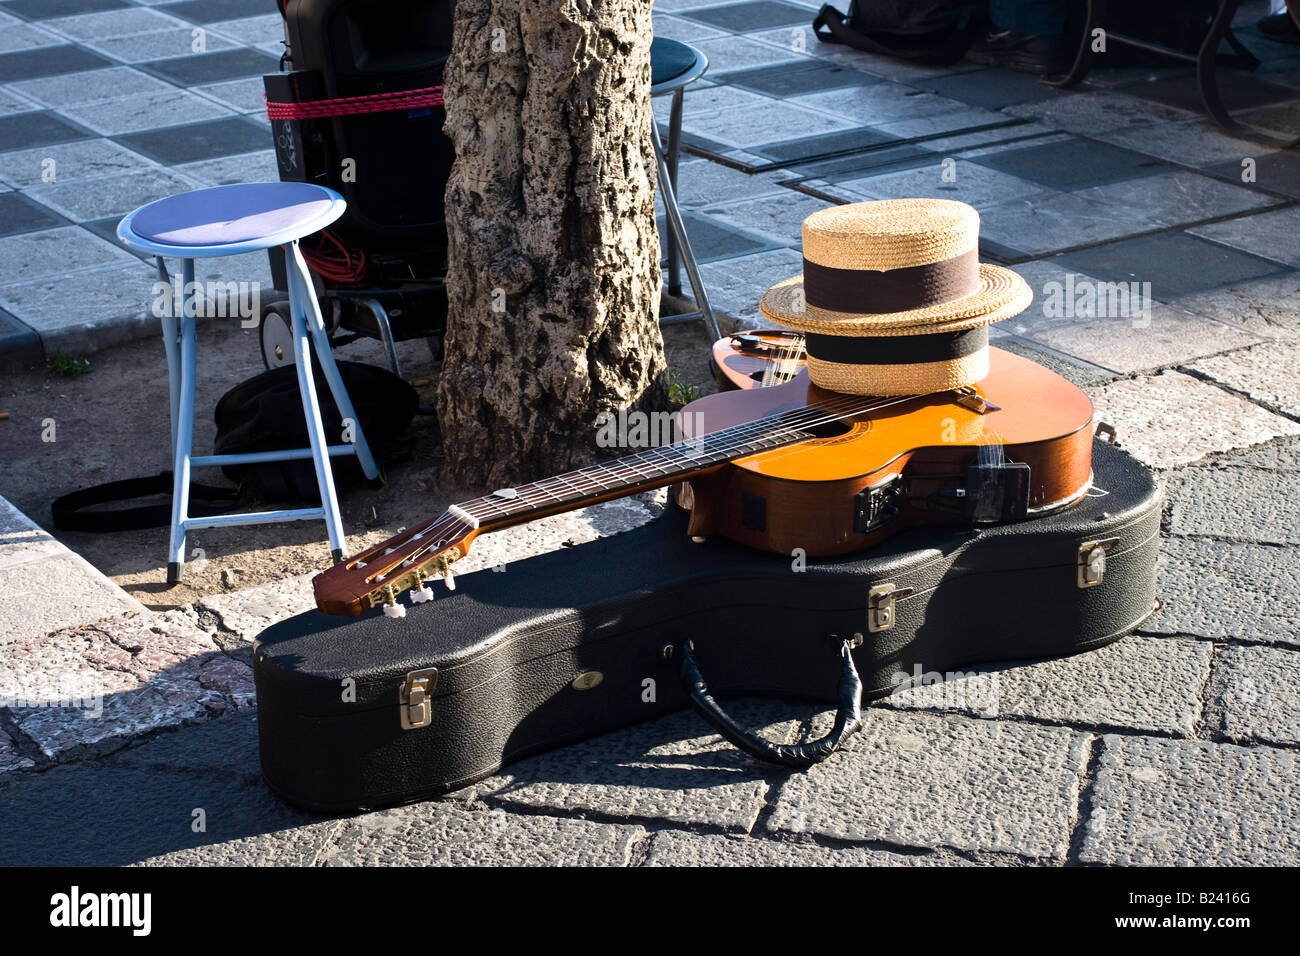 Street musician s guitar case and straw hats on a street in Taormina, Sicily, Italy - Stock Image